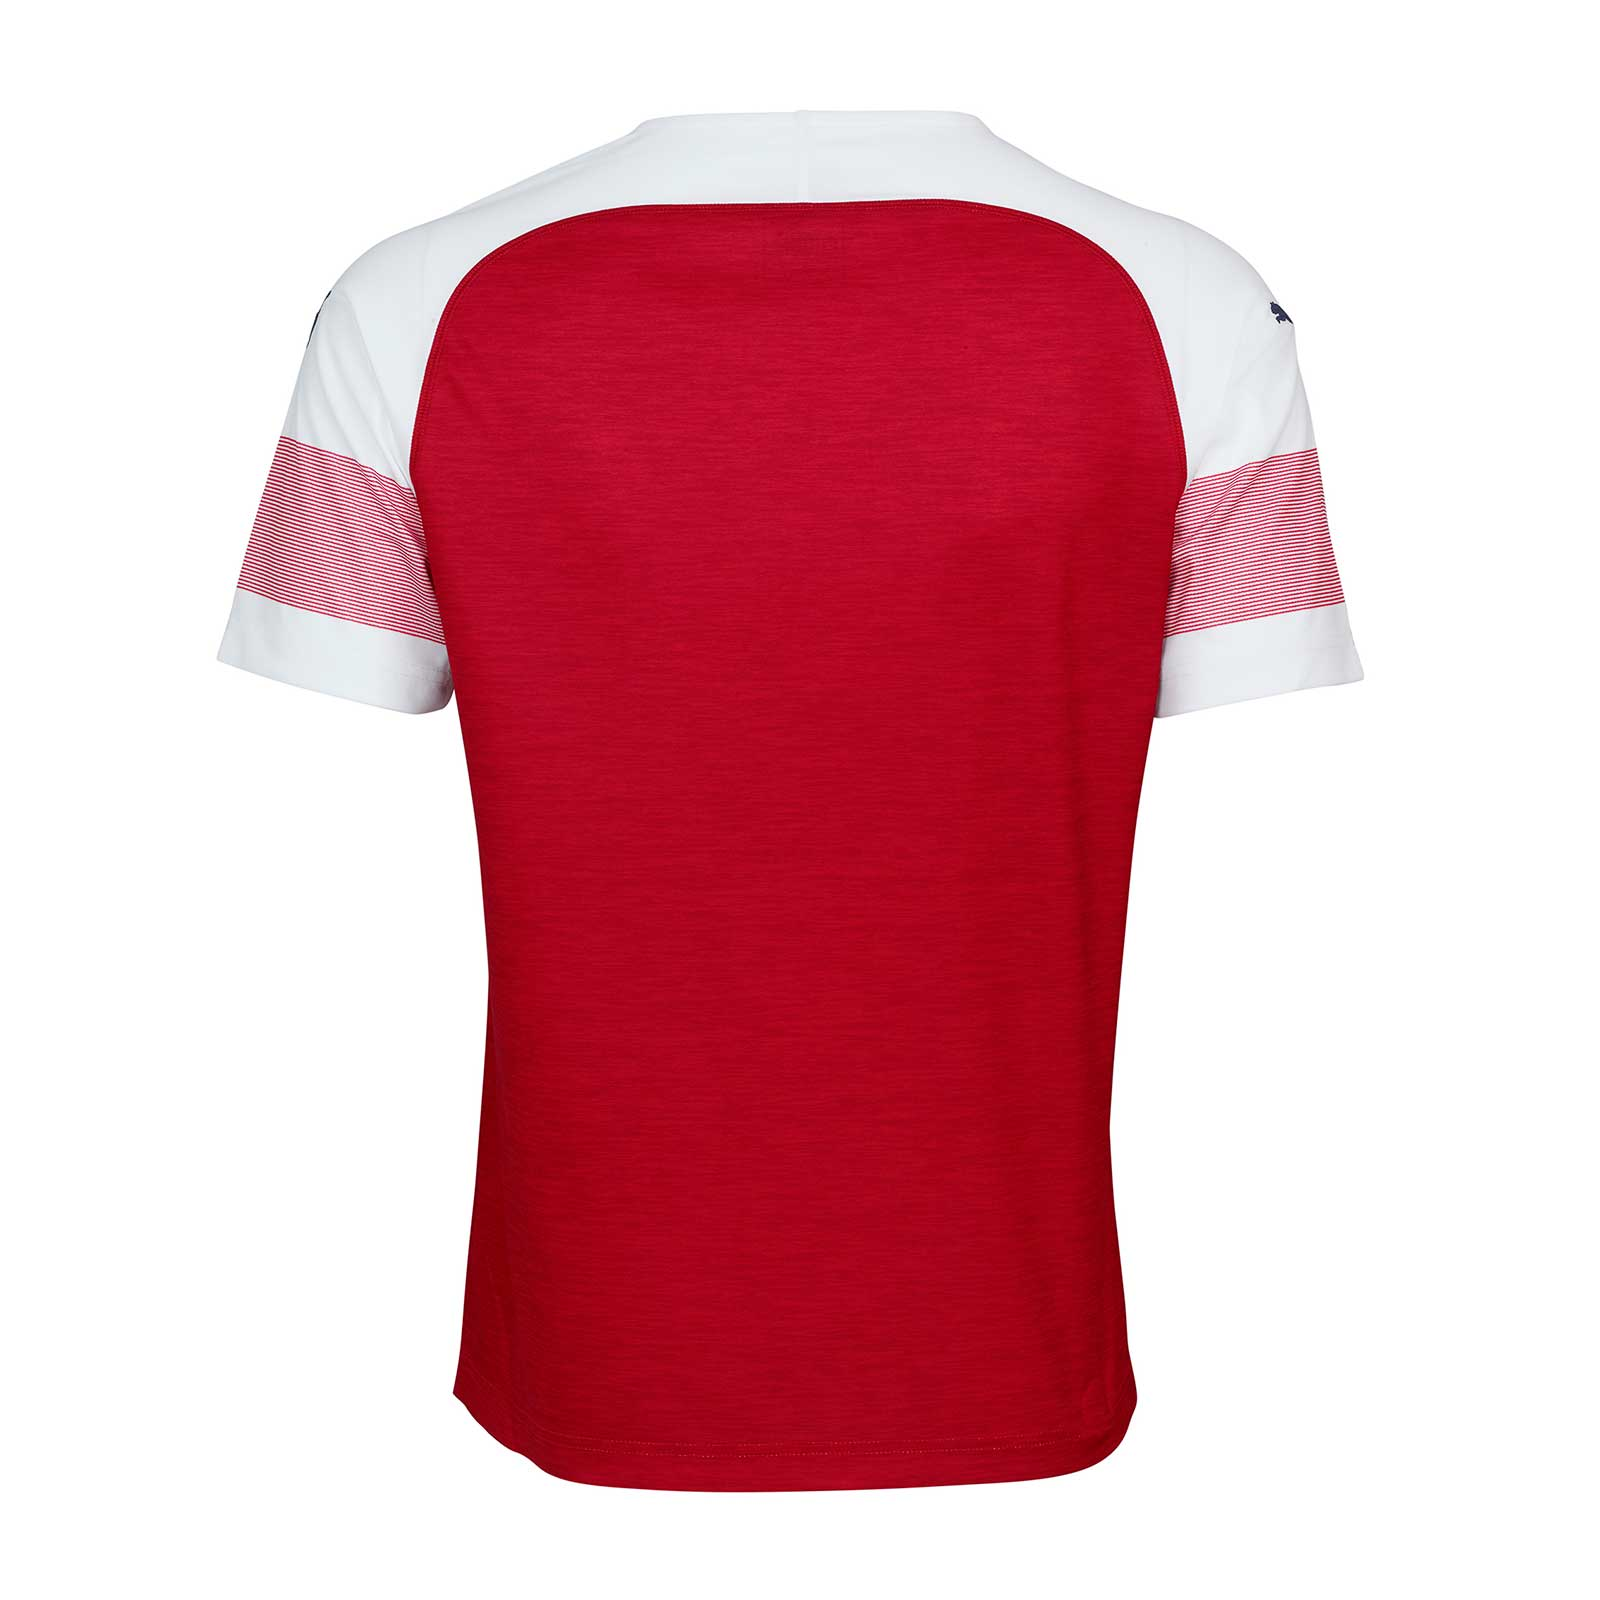 190643ee45d2 Dropping the darker red used on the previous one, the new Arsenal 2018-2019  home kit has a  Chili Red Heather  base.